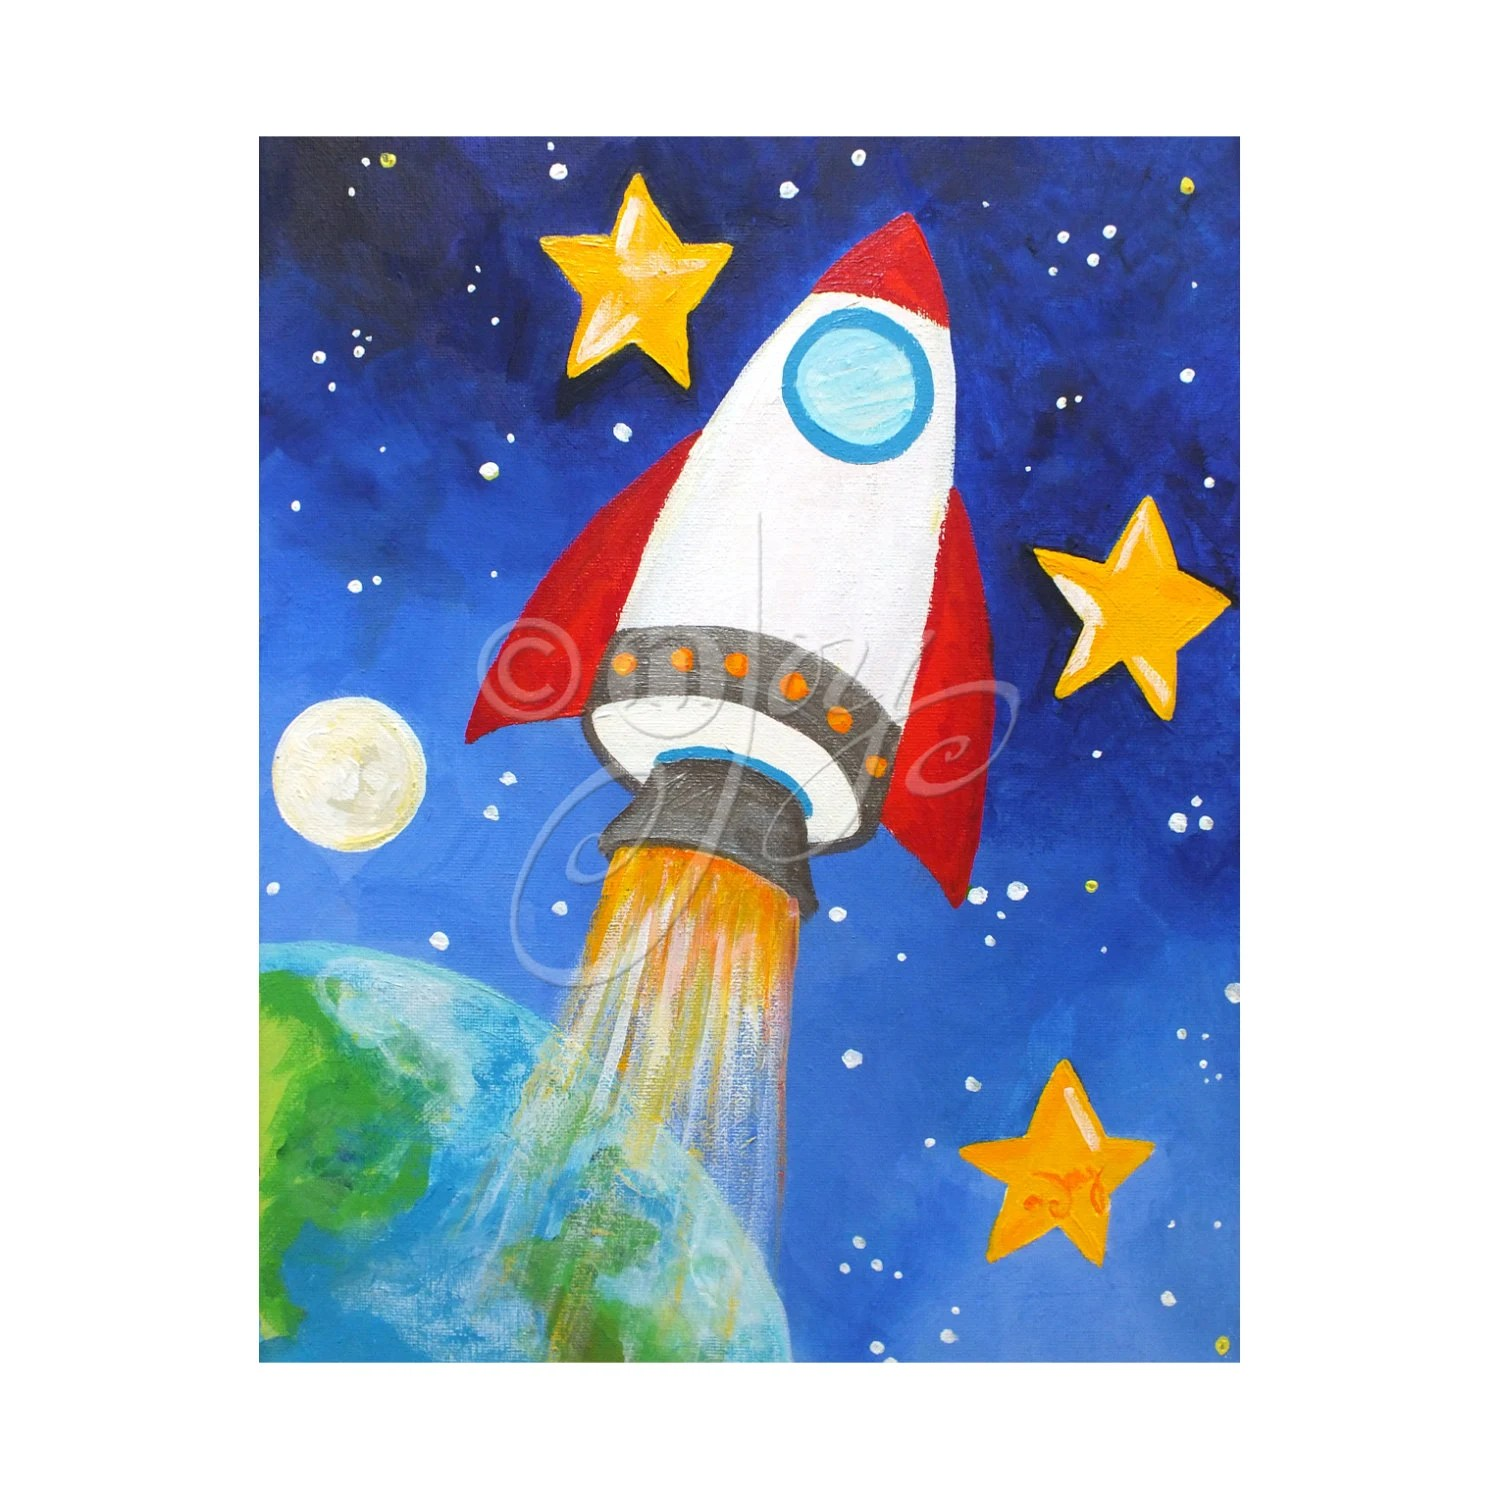 Rocket Blast Off Space Wall Art For Children 16x20 Print